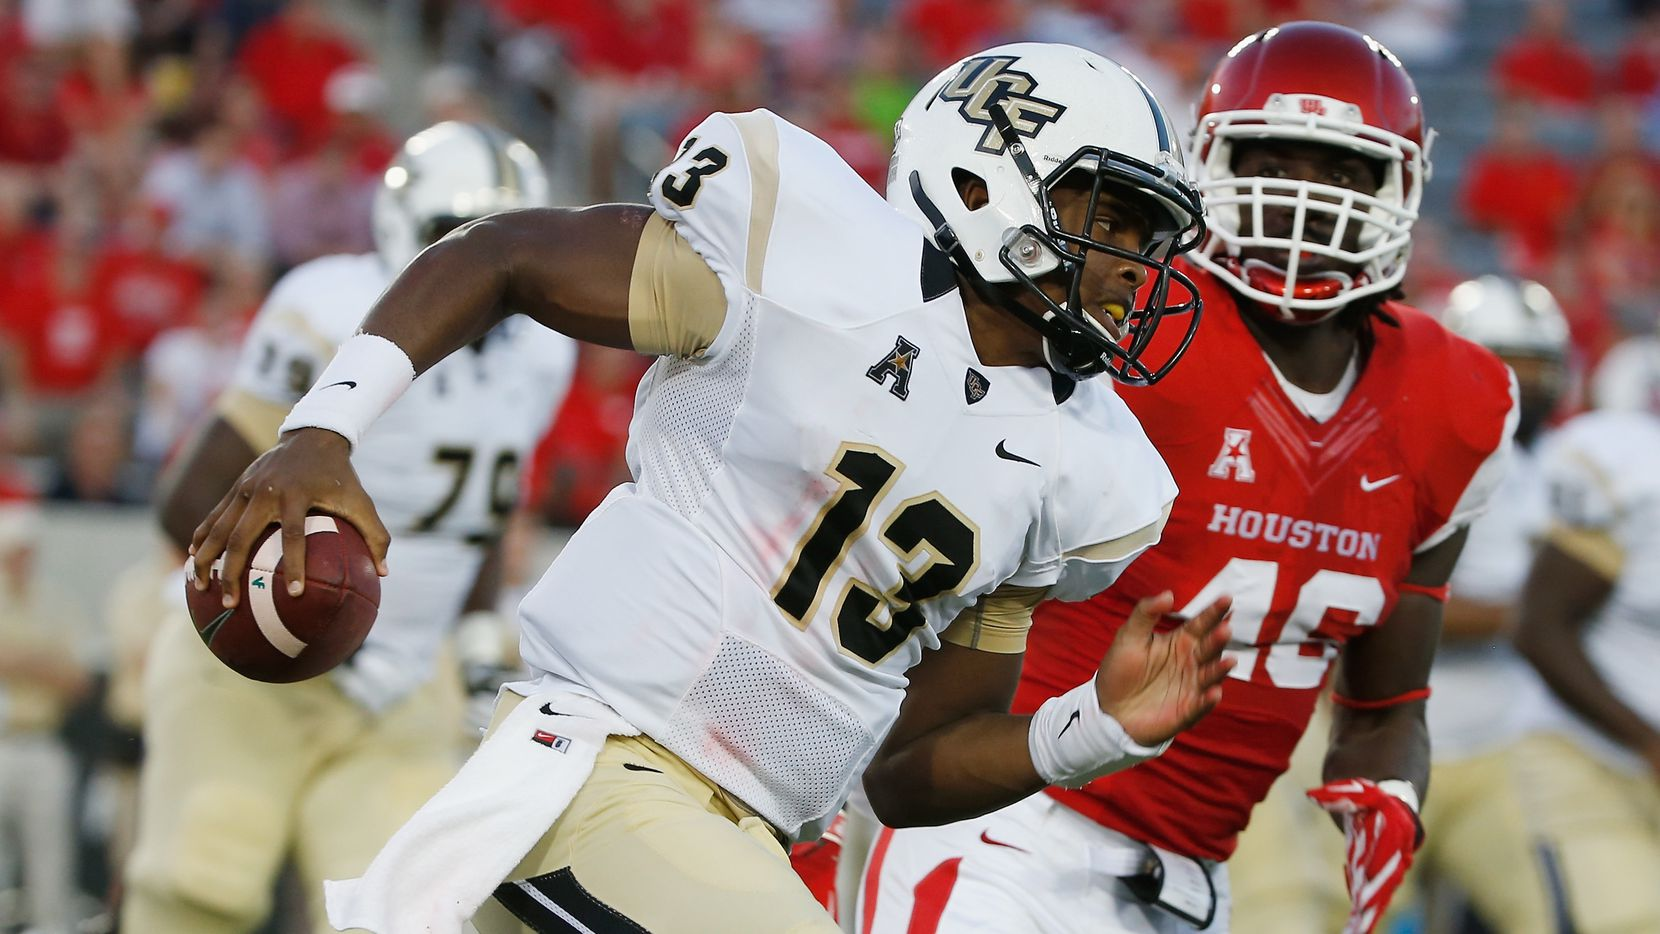 HOUSTON, TX - OCTOBER 02:  Justin Holman #13 of the UCF Knights scrambles in the first half past Trevor Harris #46 of  the Houston Cougars at TDECU Stadium  on October 2, 2014 in Houston, Texas.  (Photo by Scott Halleran/Getty Images)